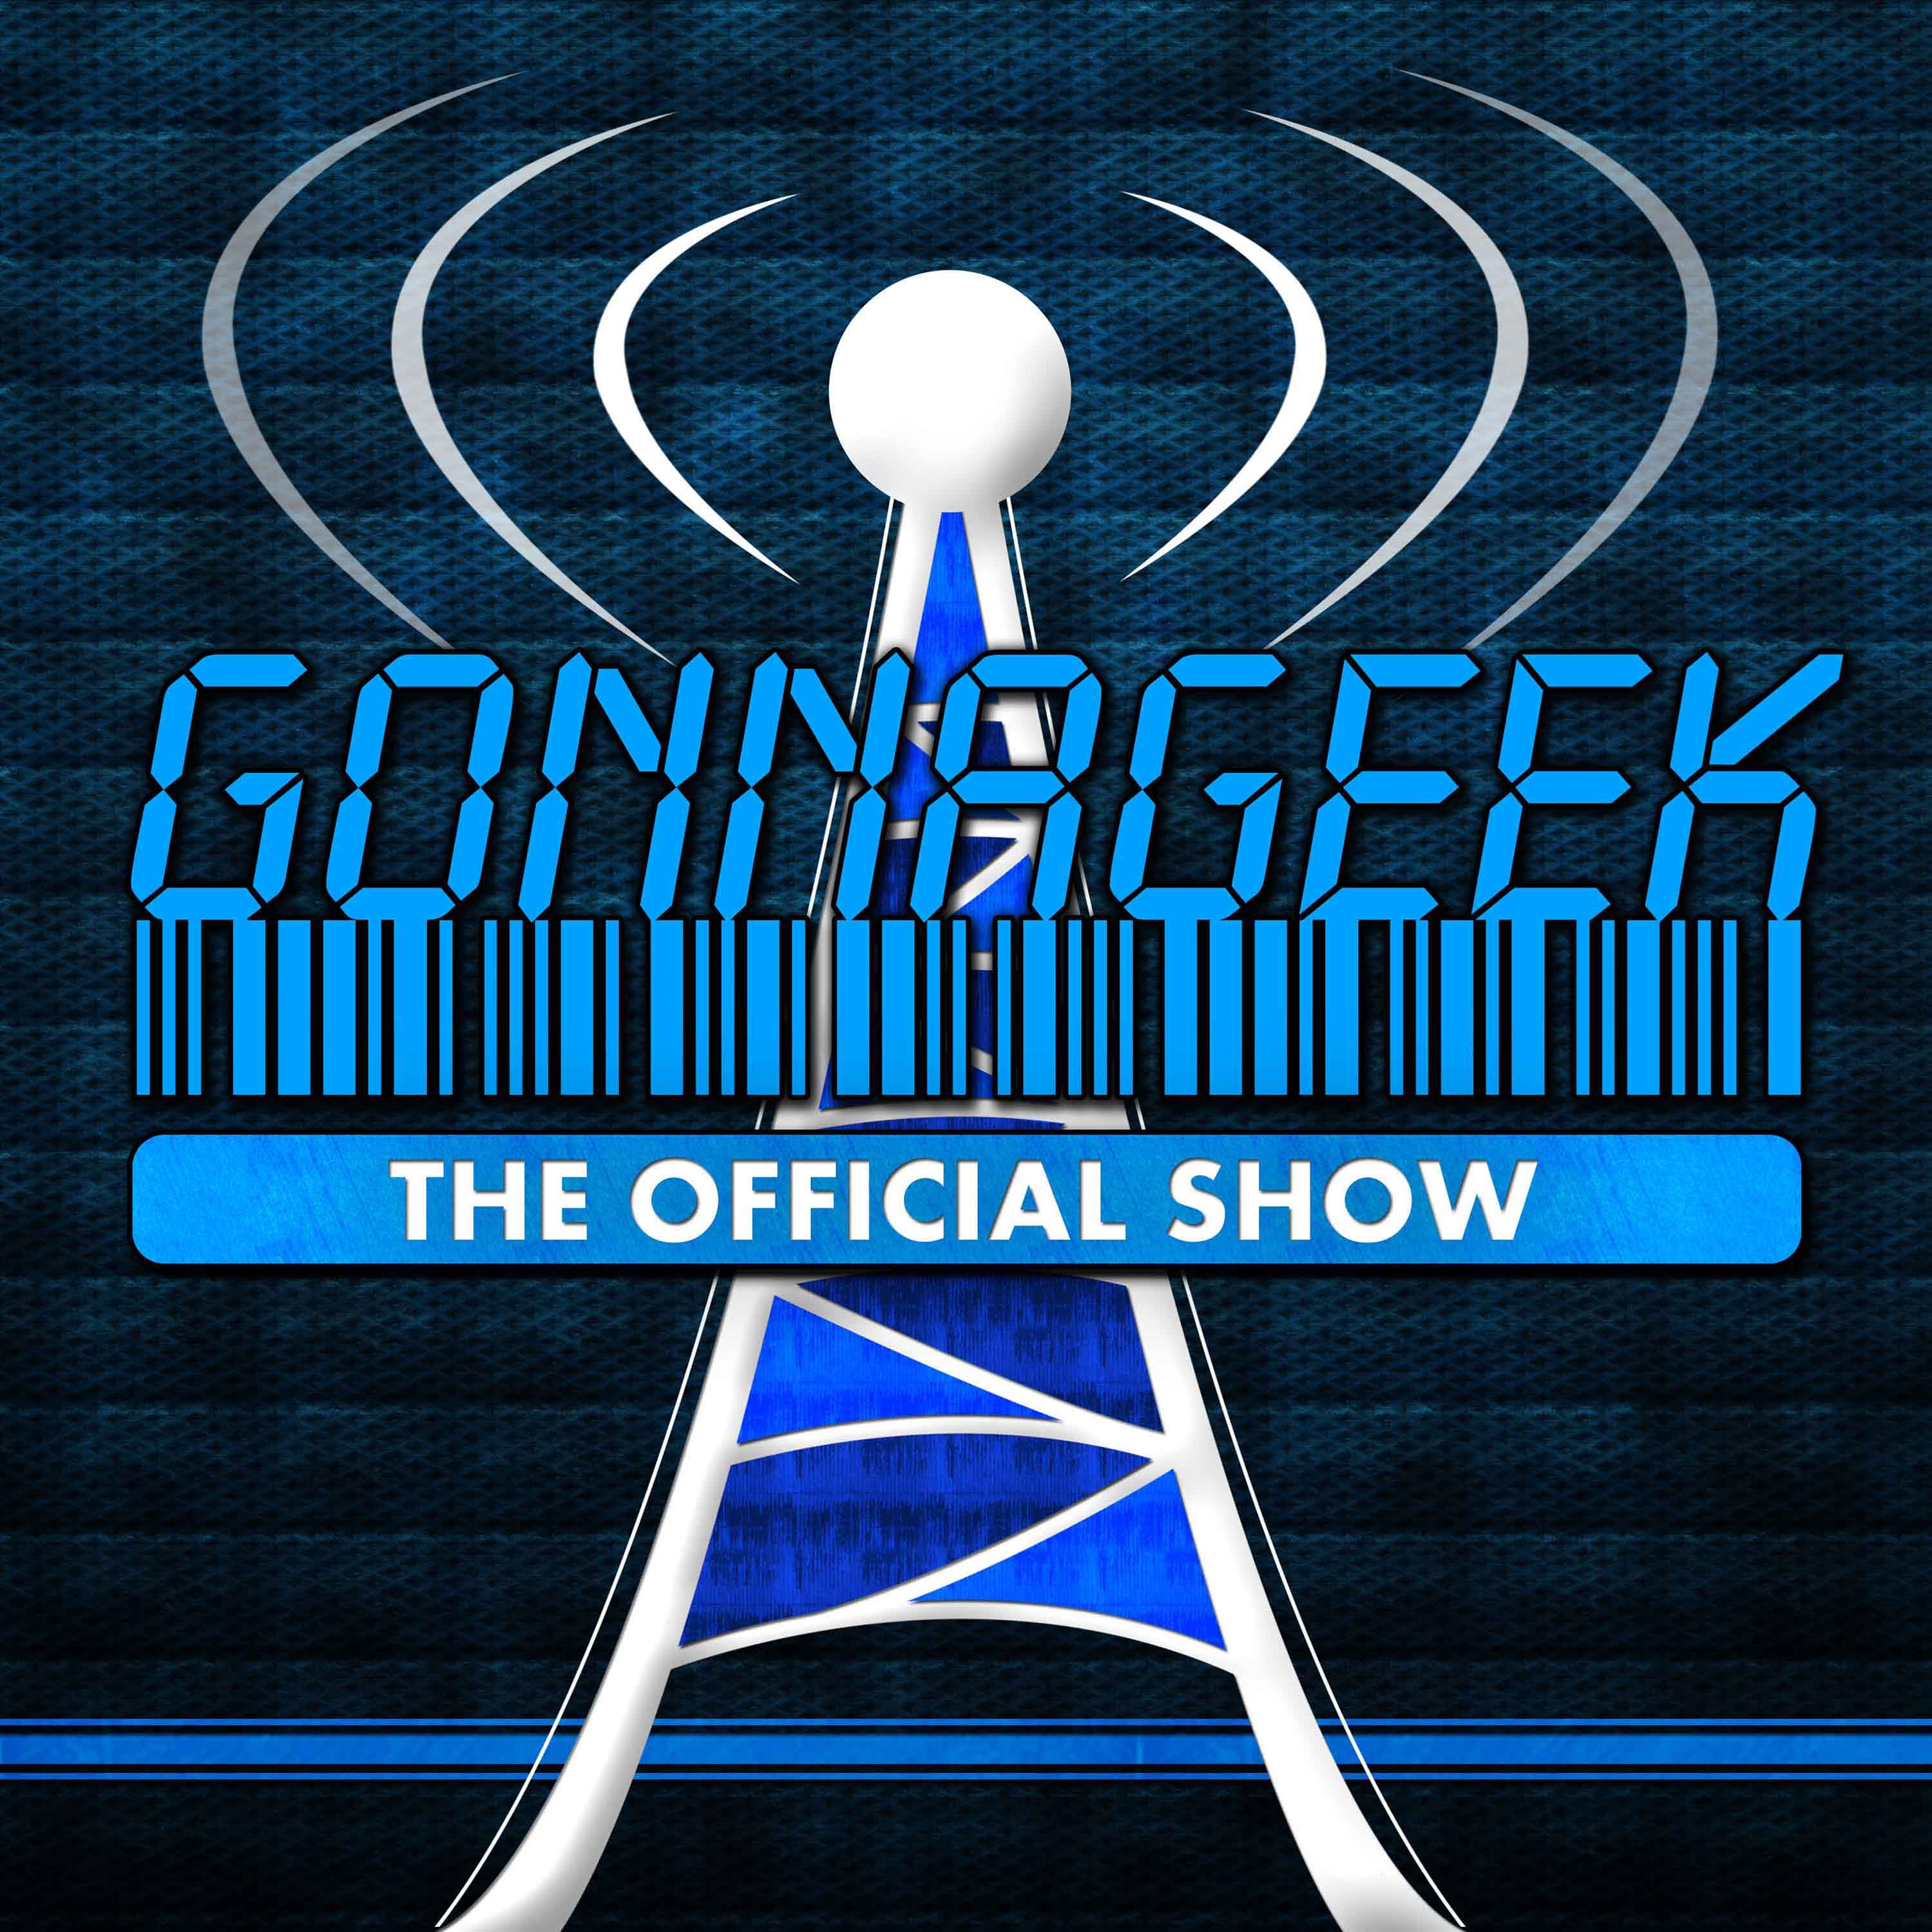 GonnaGeek.com Show - Tech, Space, Scifi, Gaming and other Geekyness